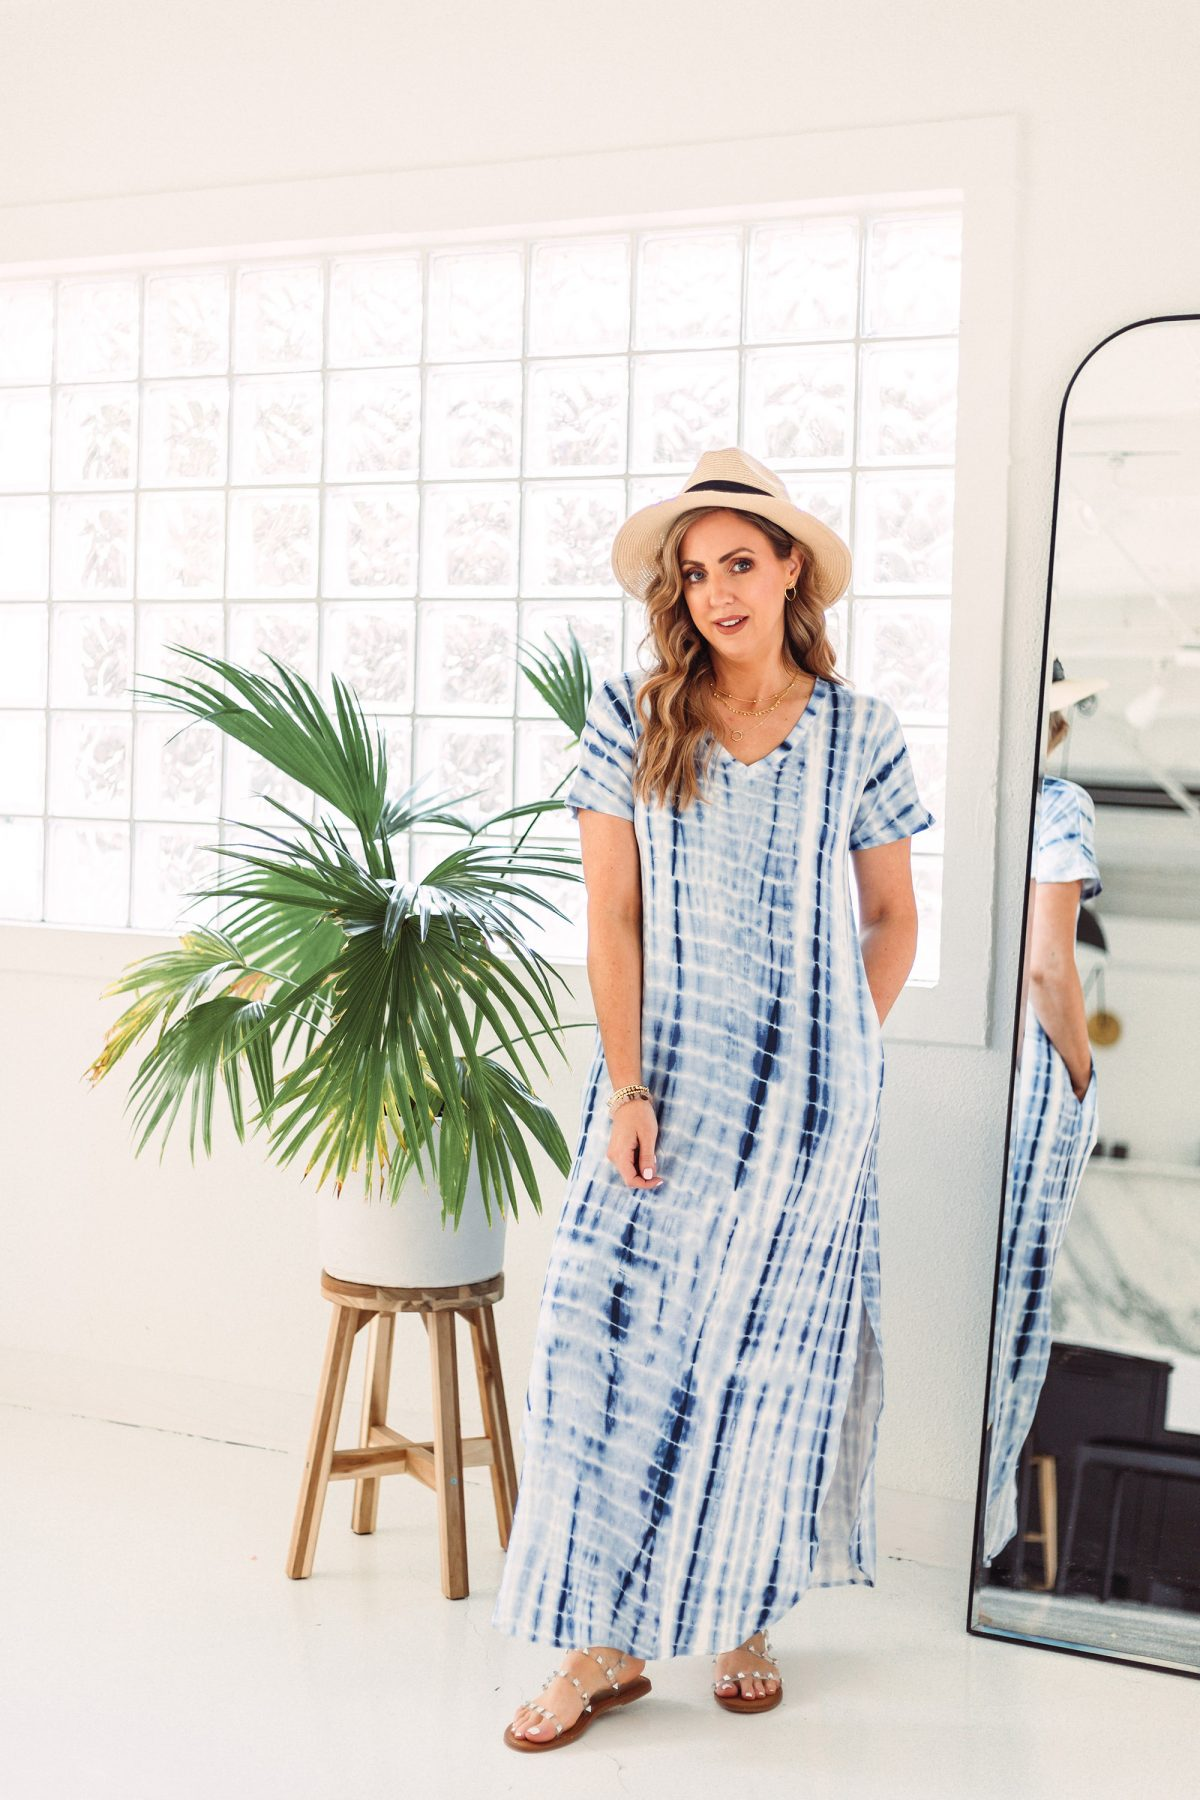 Texas influencer Meg O. shares Amazon fashion basics for spring and summer 2021 - this blue tie dye maxi dress is on trend and perfect for the beach.